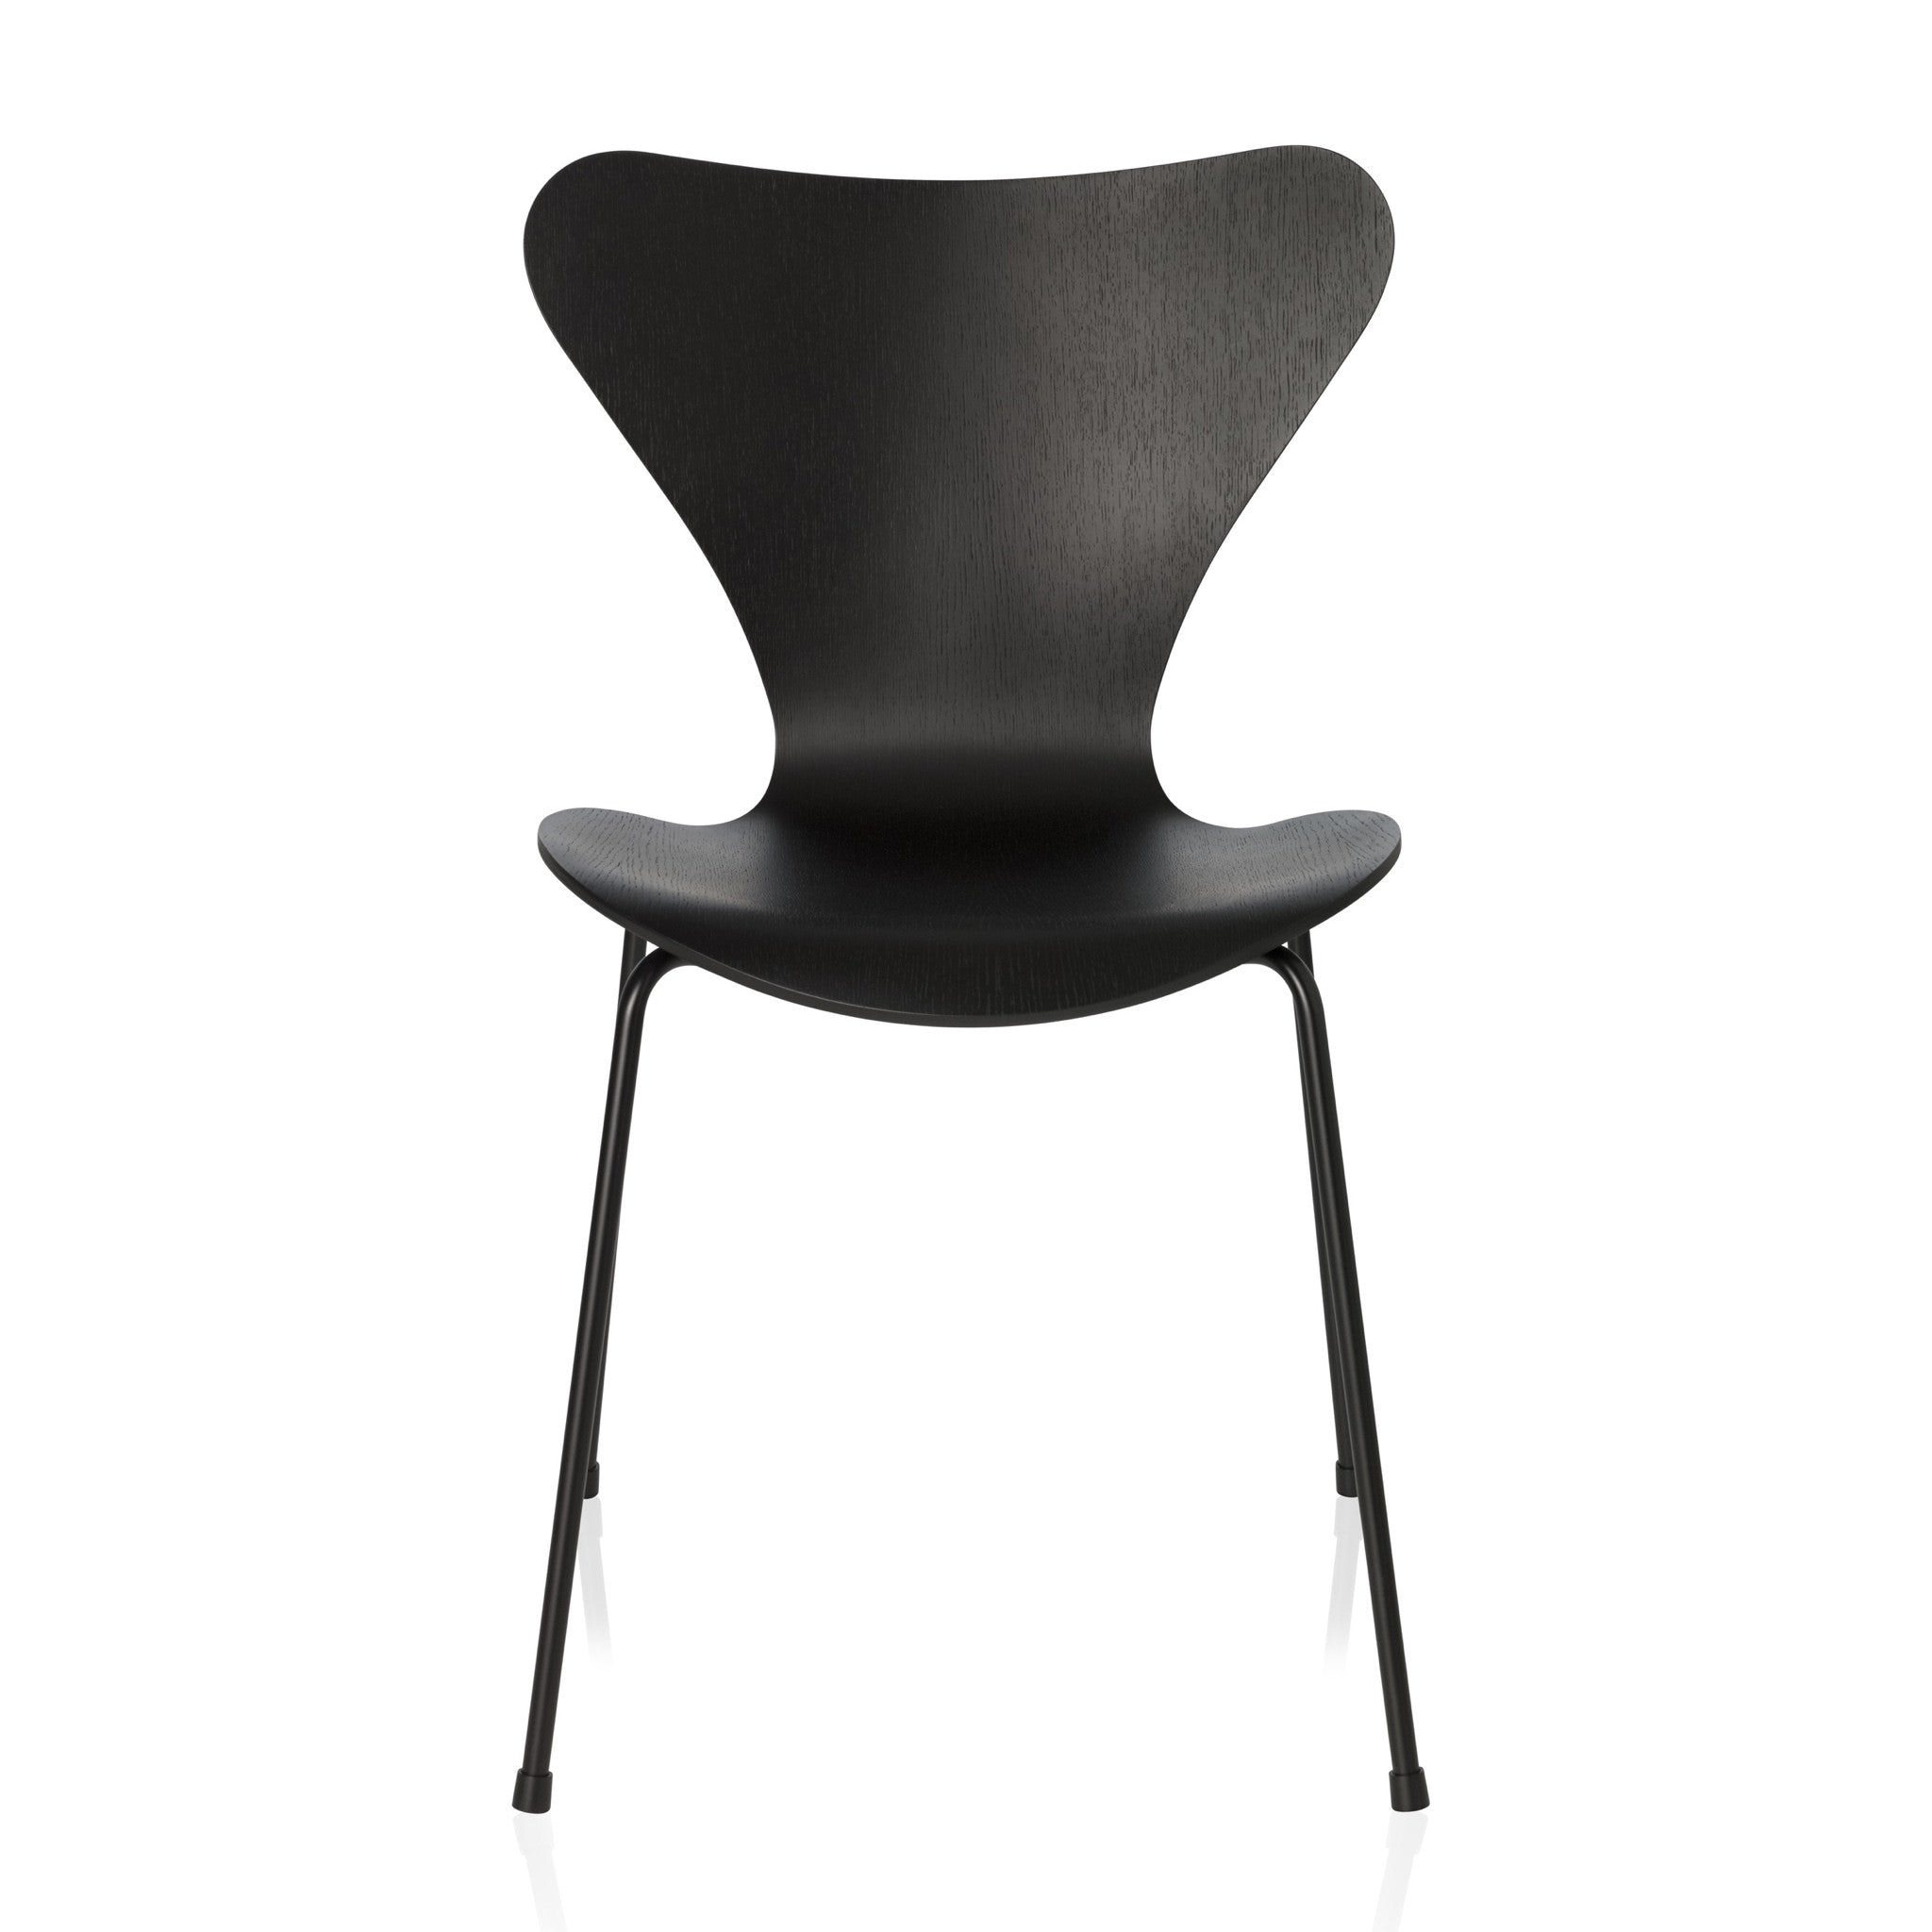 Series 7 Chair Monochrome by Arne Jacobsen